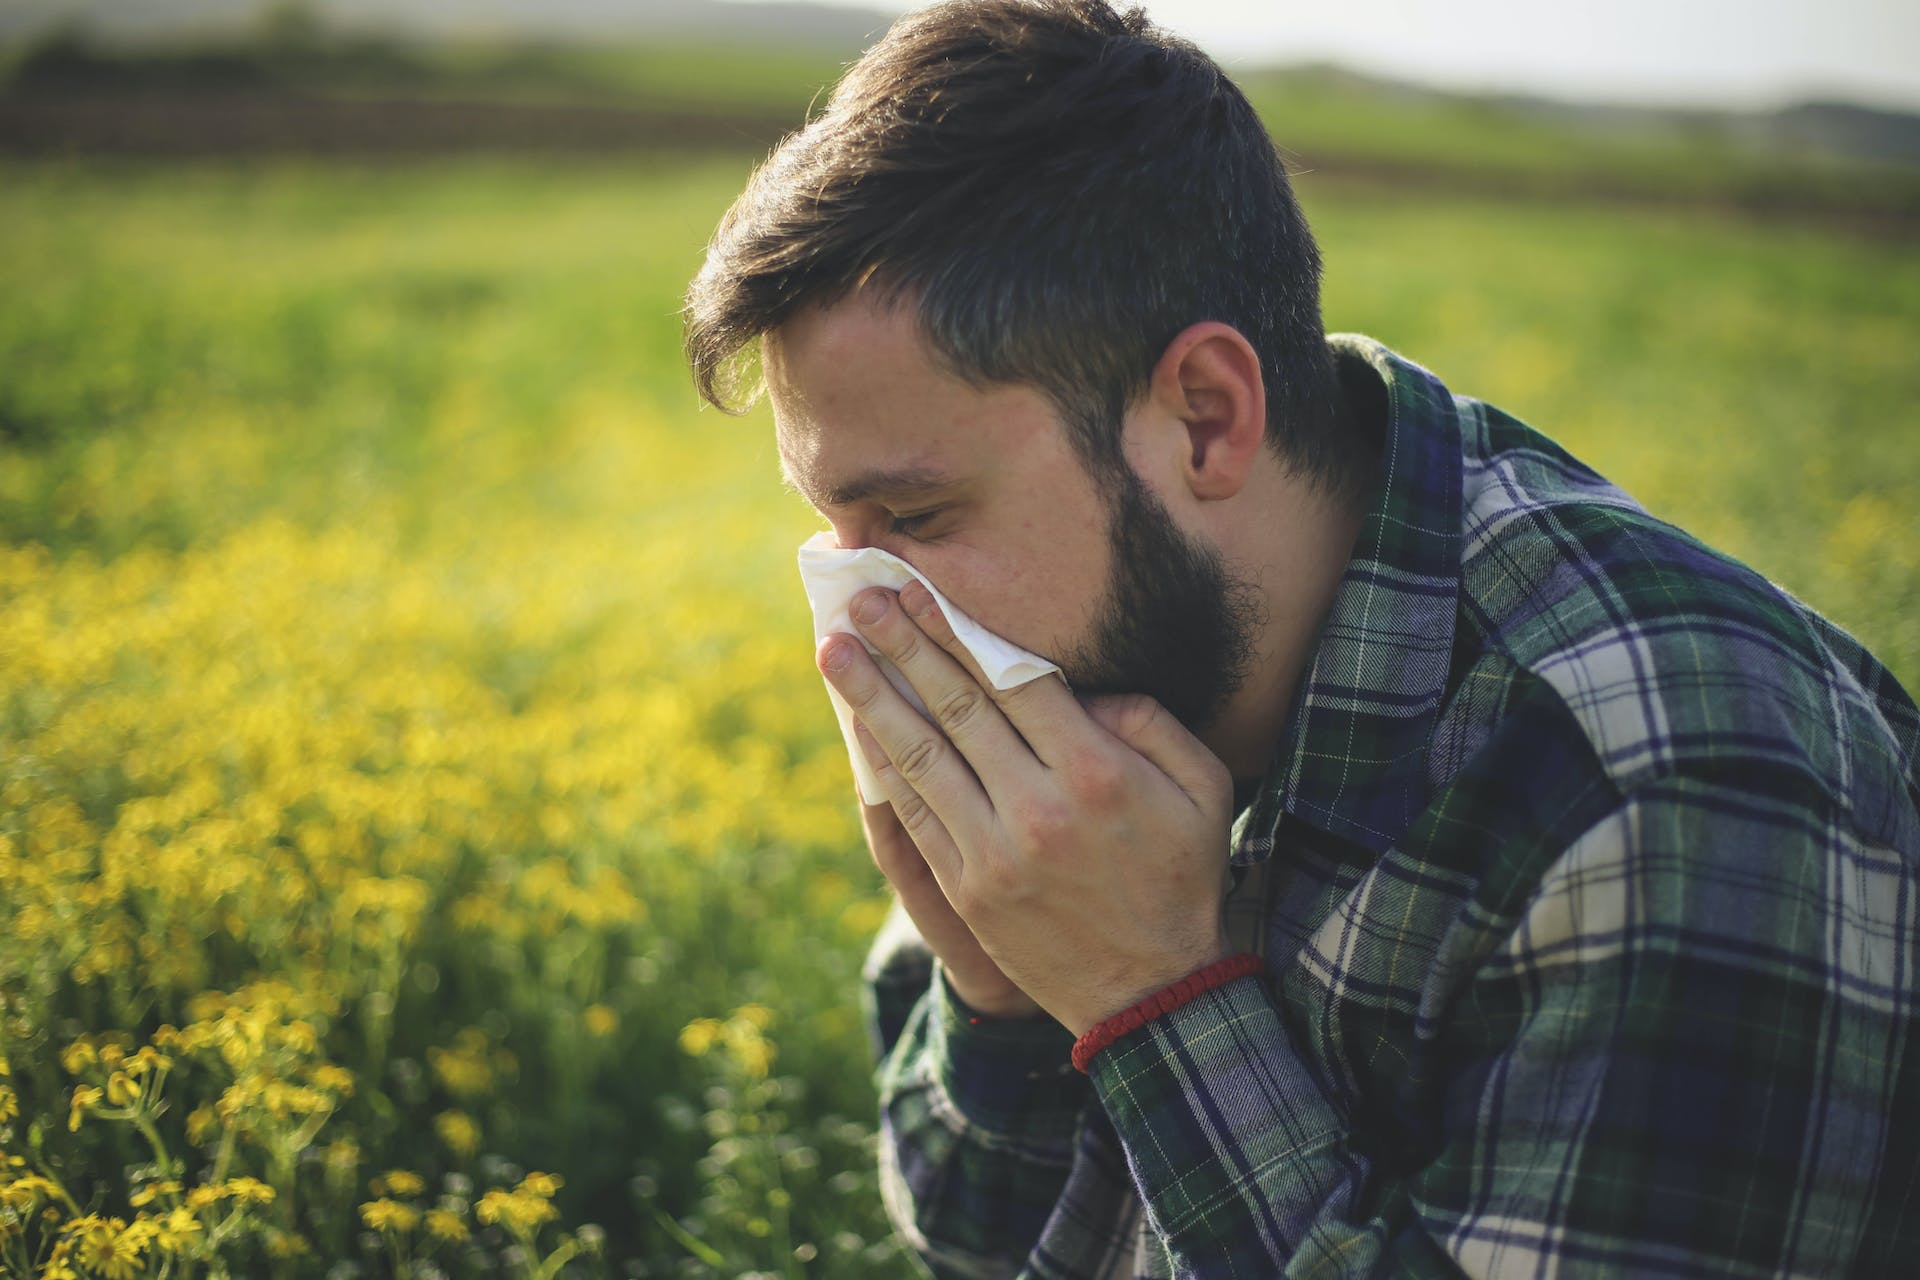 A man sneezing with allergies